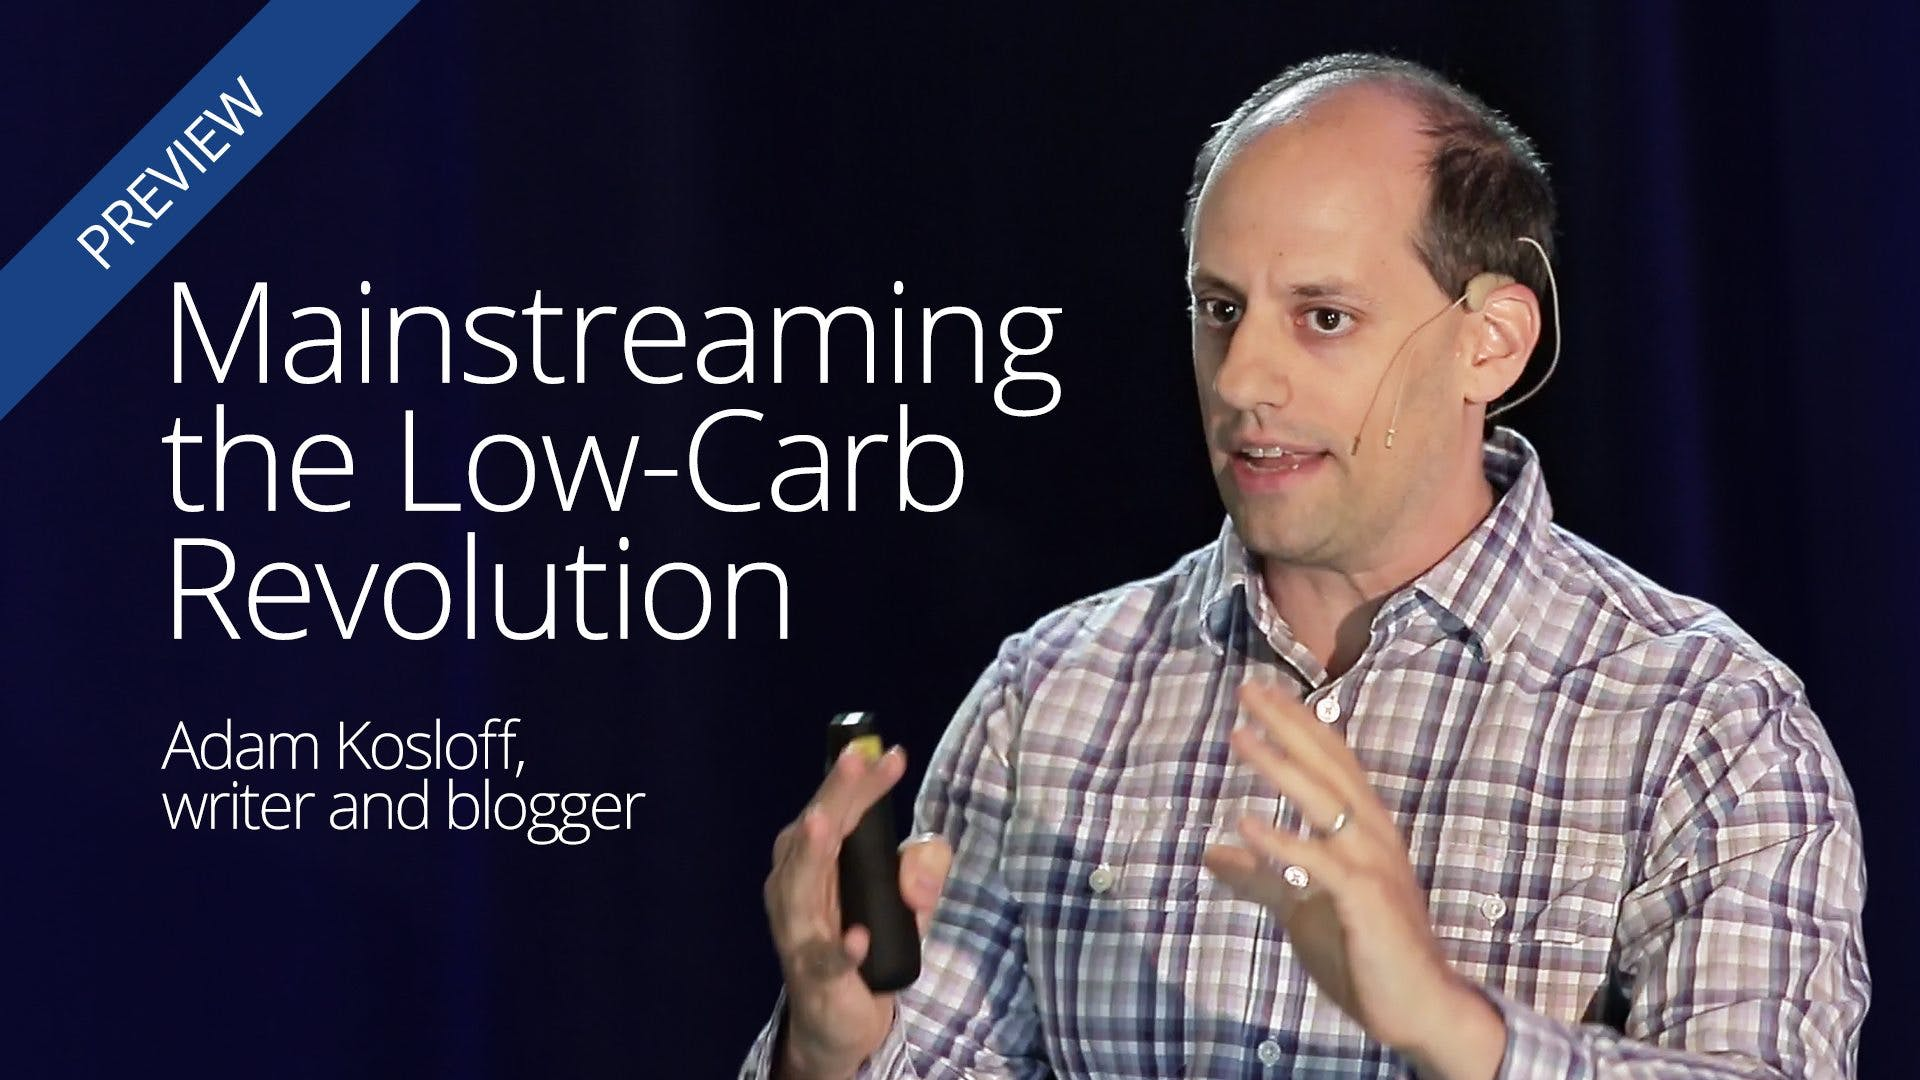 Mainstreaming the Low-Carb Revolution